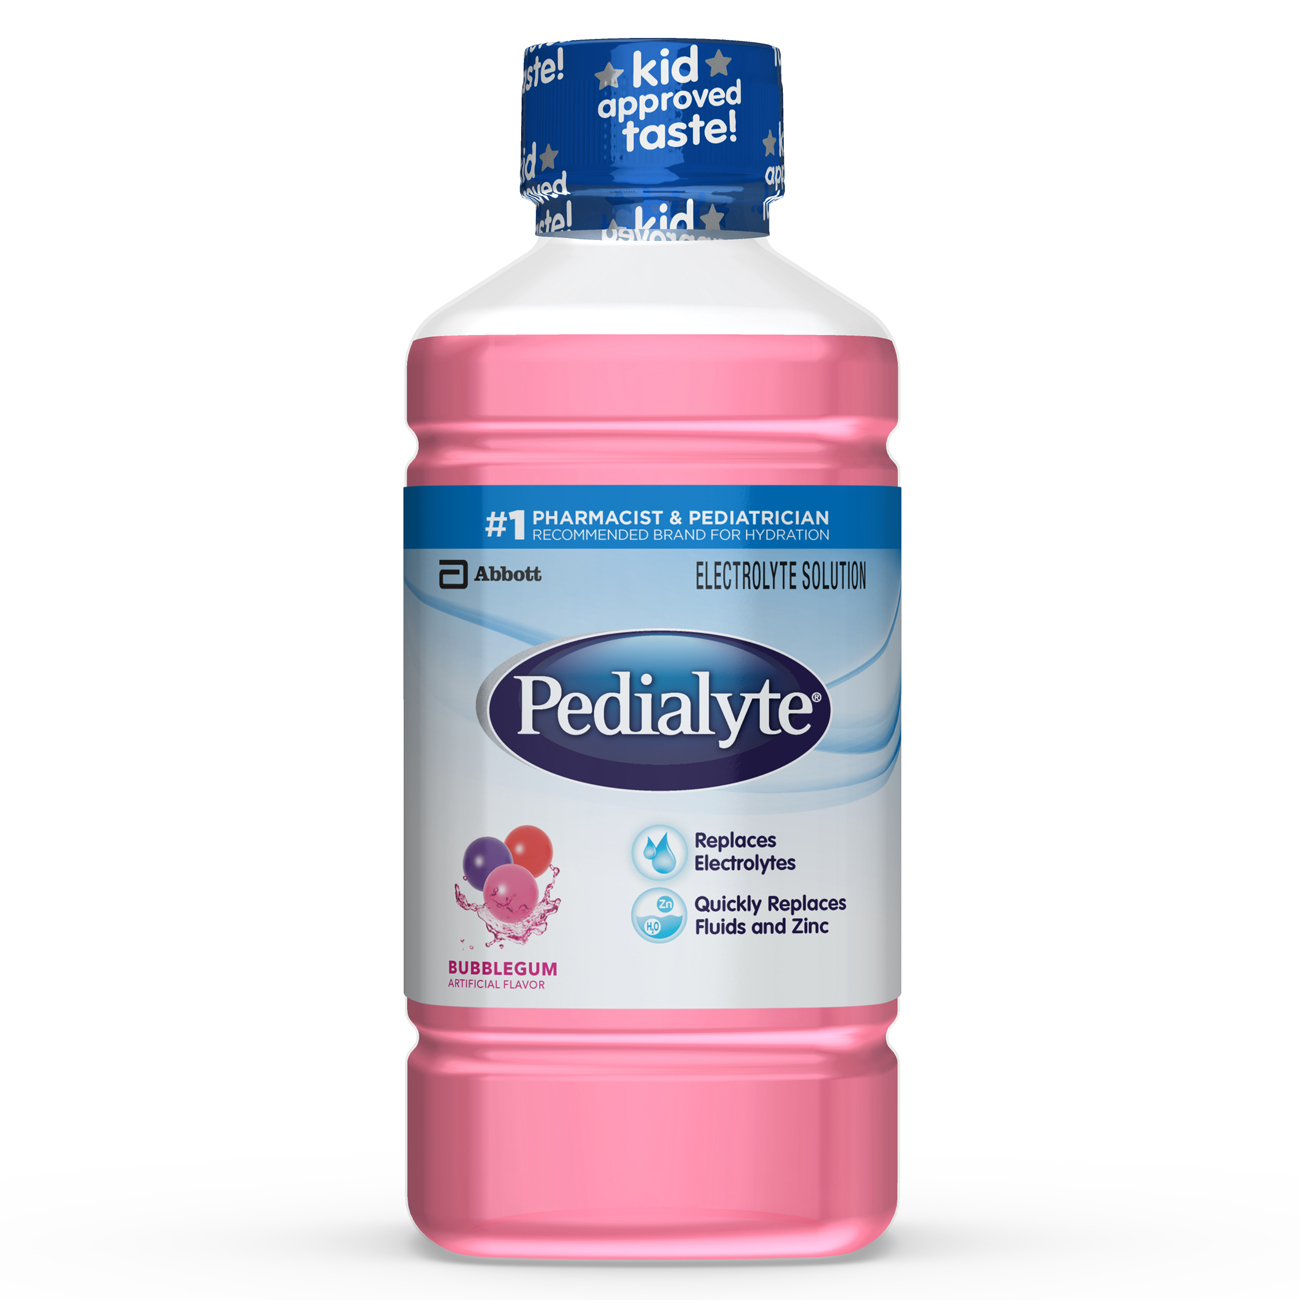 Pedialyte Electrolyte Solution, Electrolyte Drink, Bubble Gum, Liquid, 35 fl oz